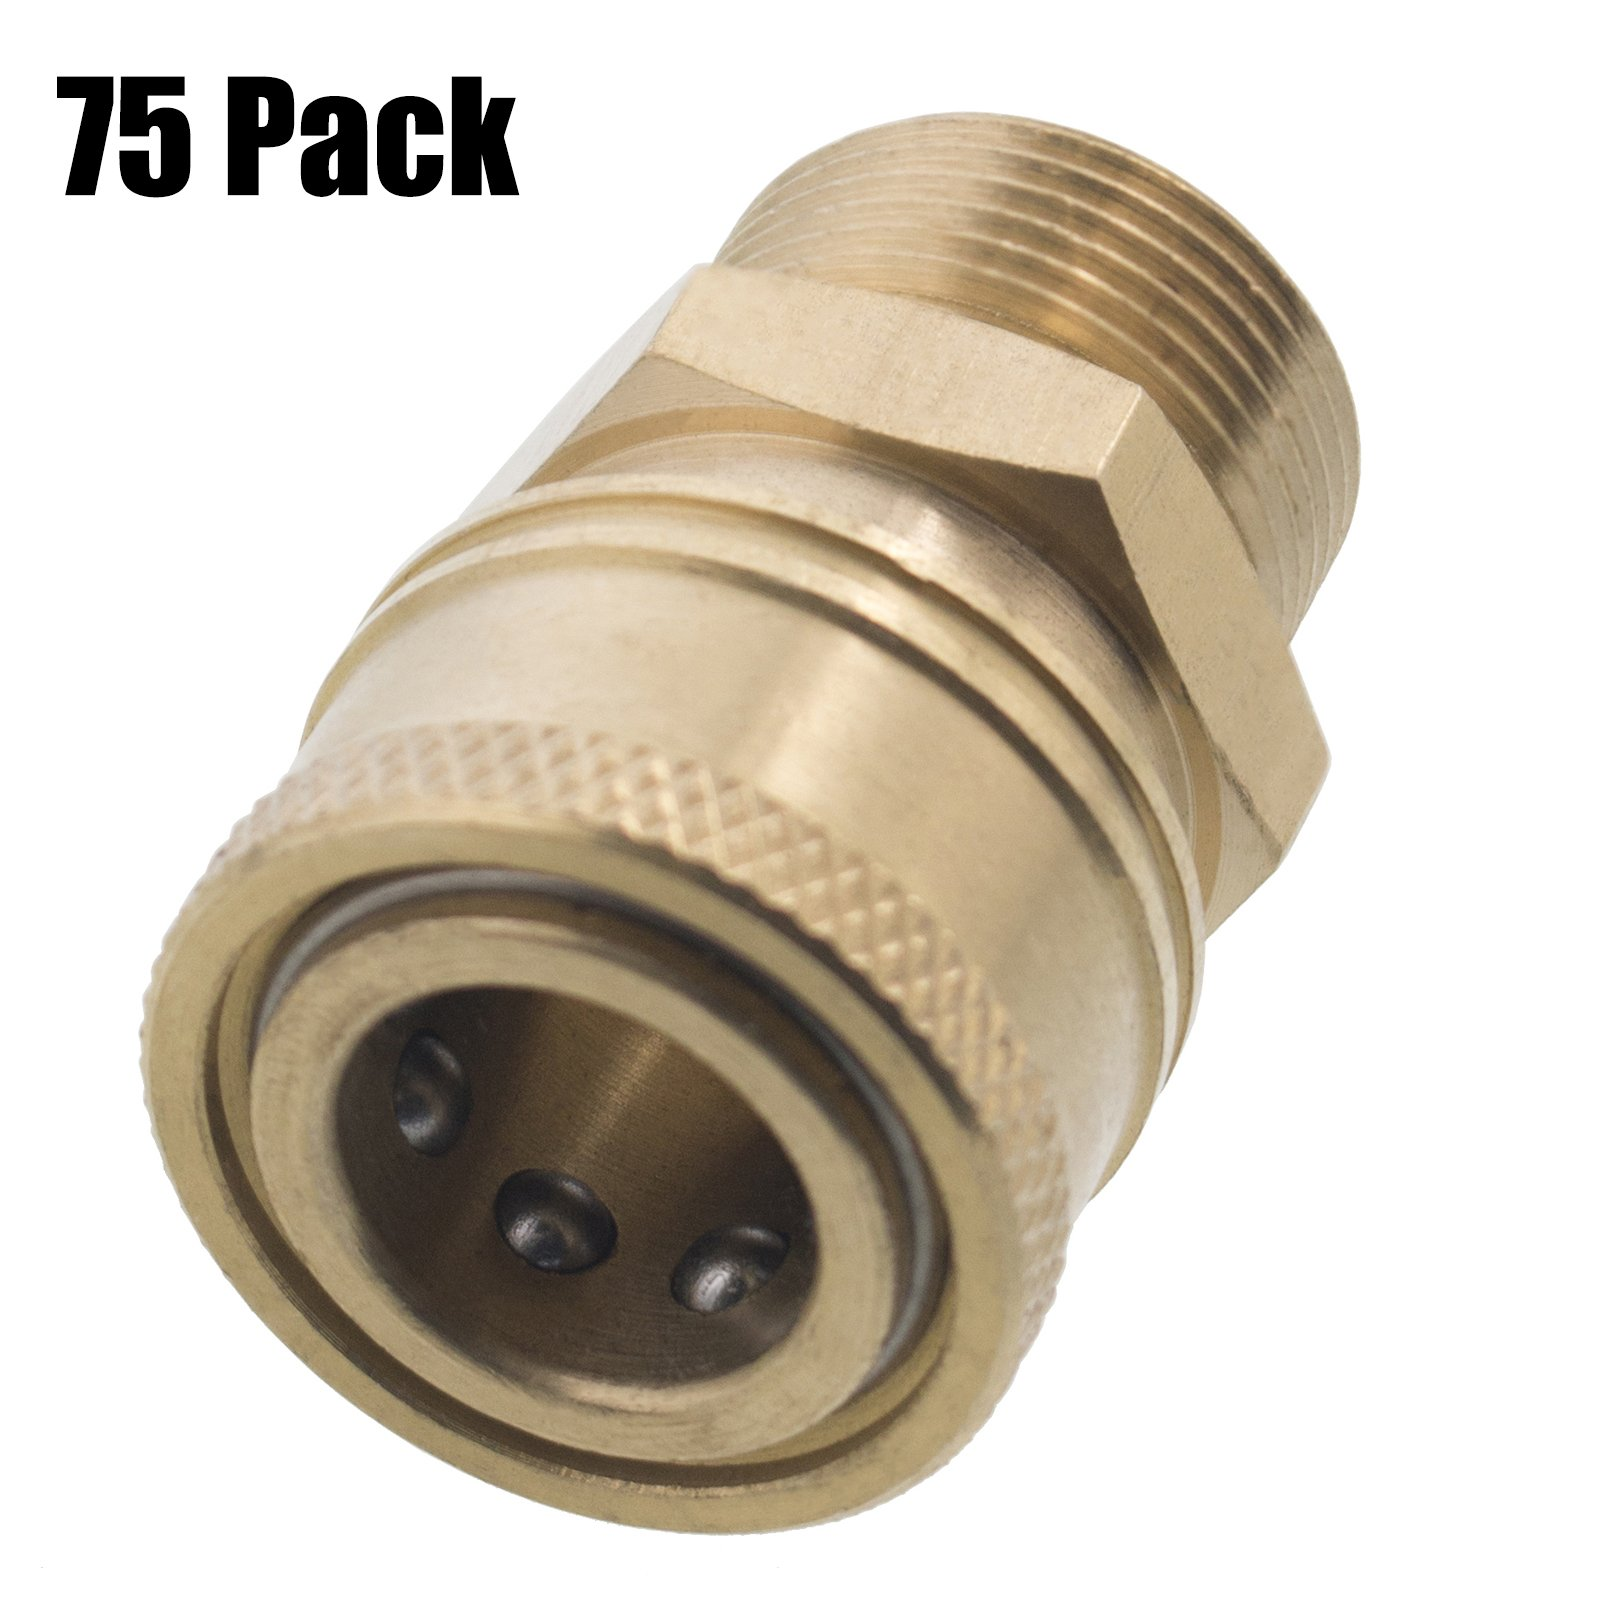 Erie Tools 75 Pressure Washer 3/8 Male NPT to M22 Quick Connect Socket Coupler 14 mm